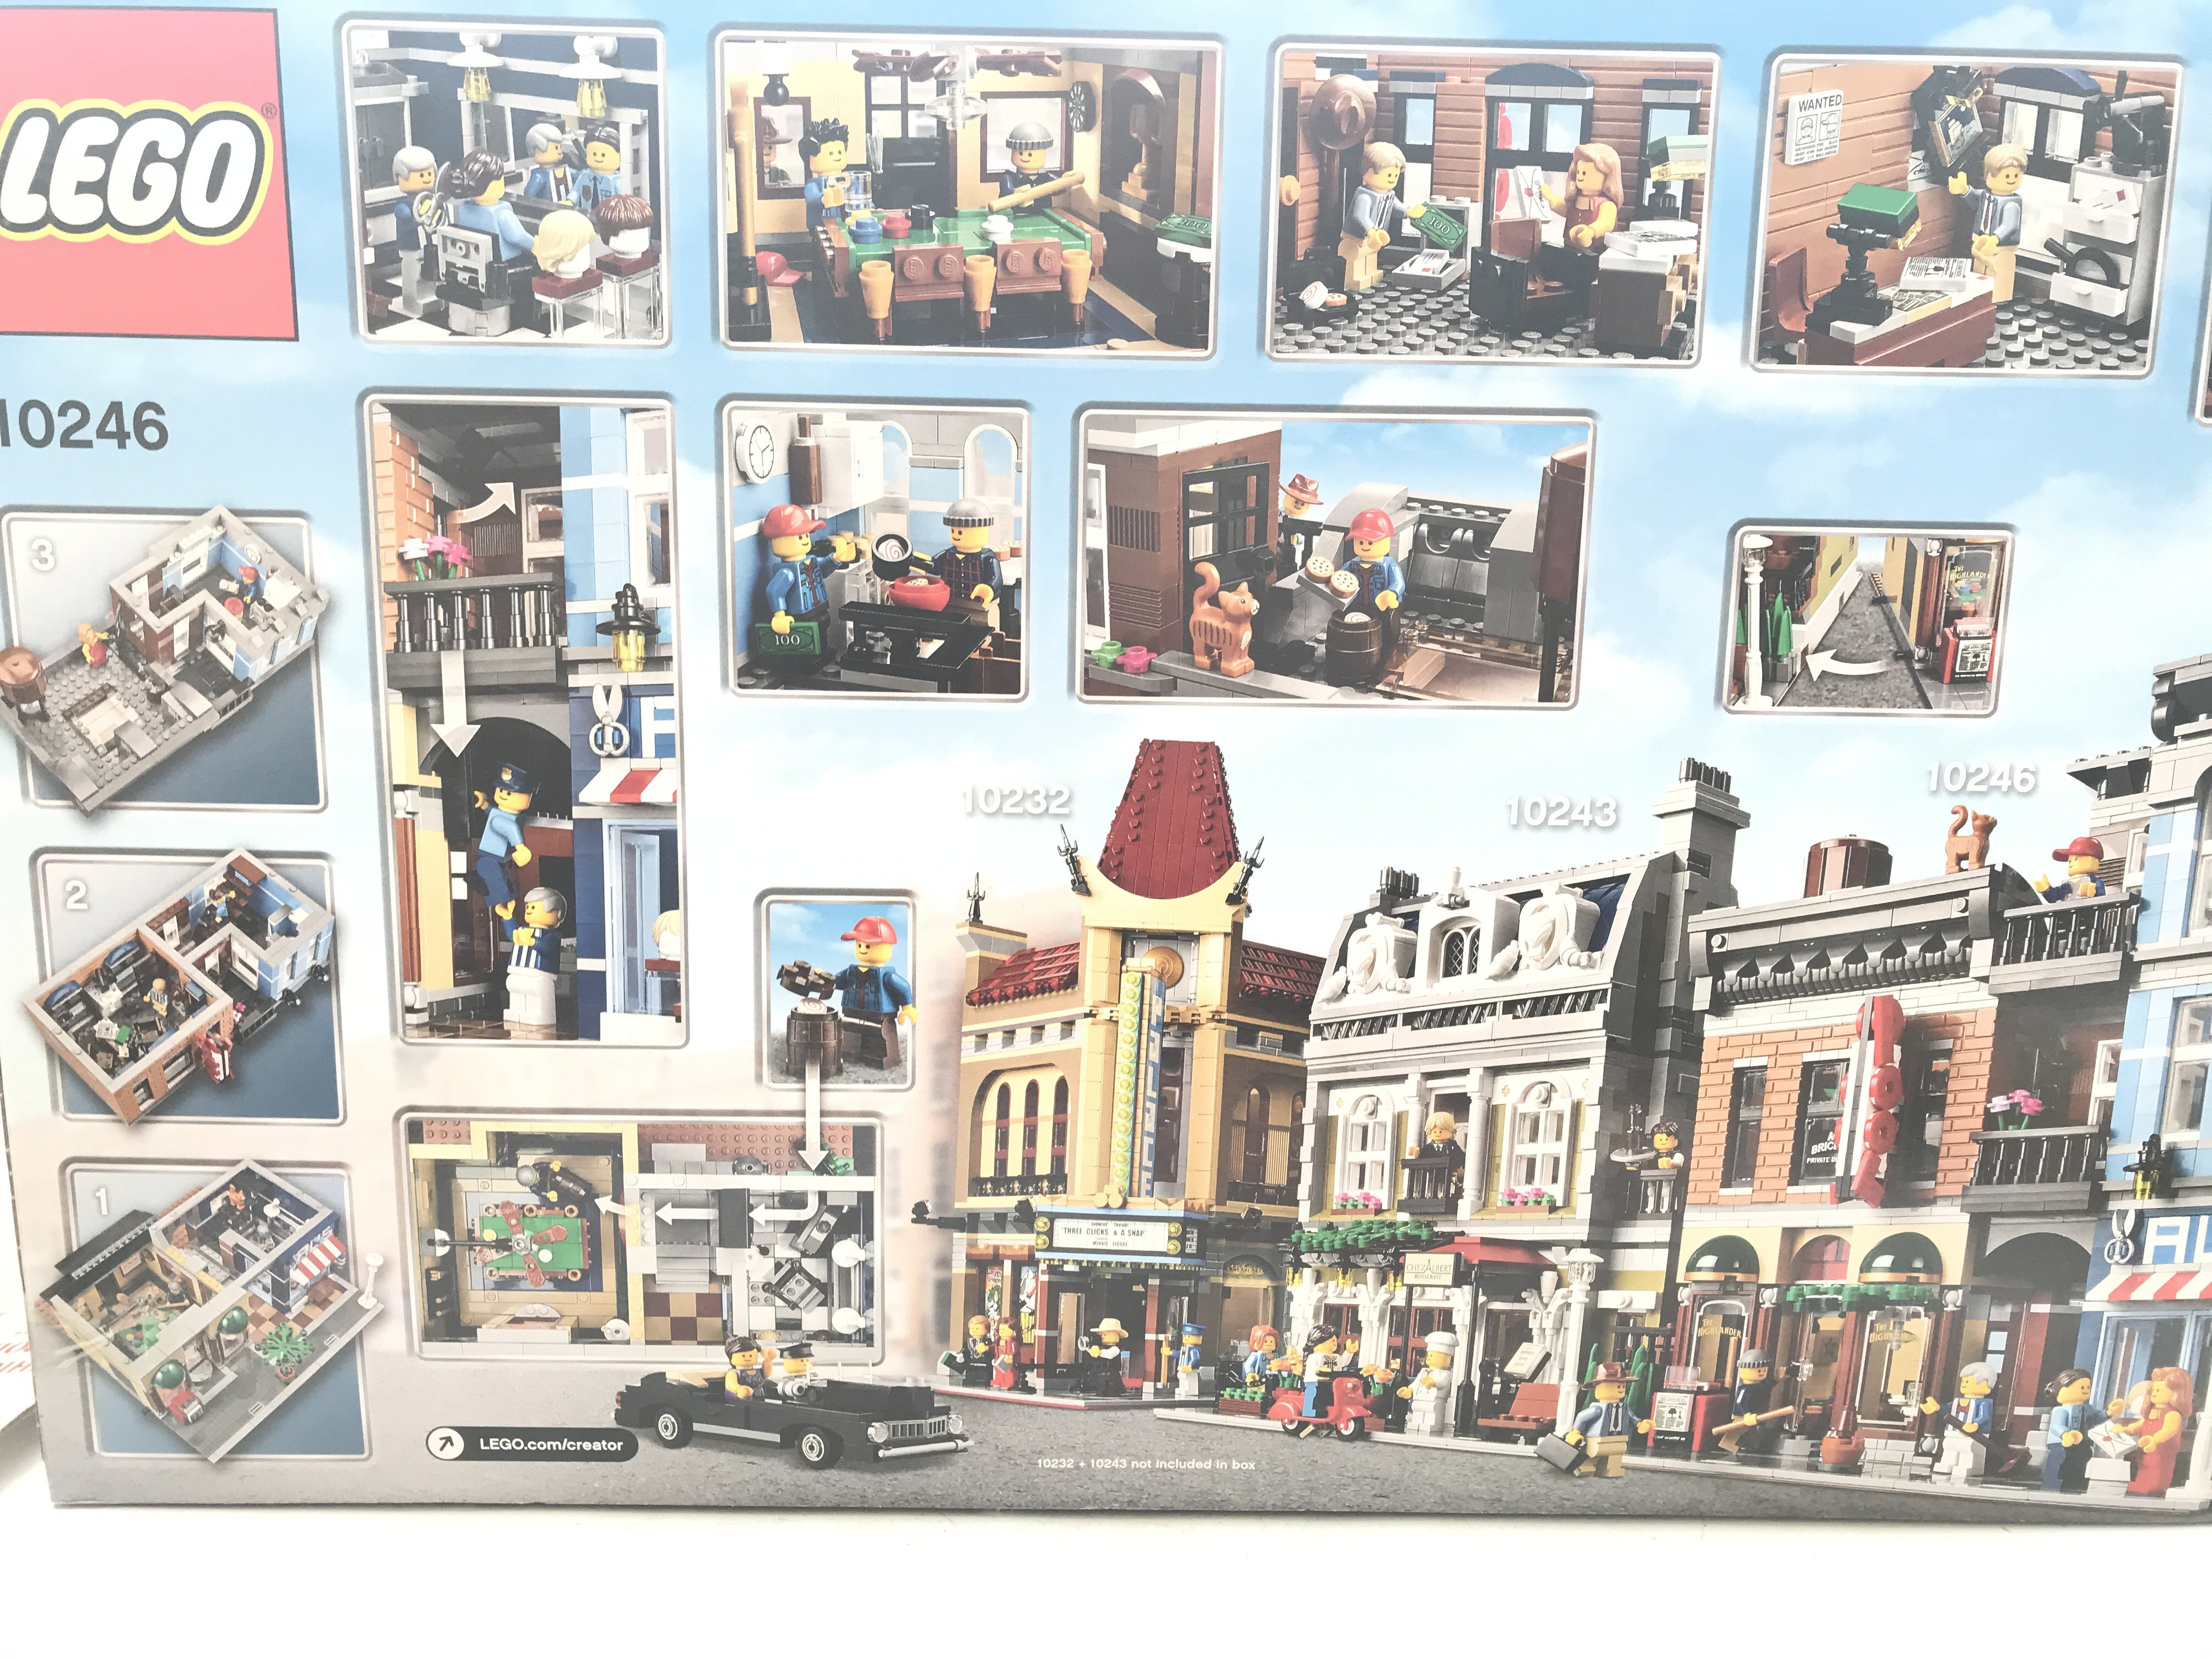 A Boxed Lego Detectives Office 2262 pcs #10246. - Image 2 of 2